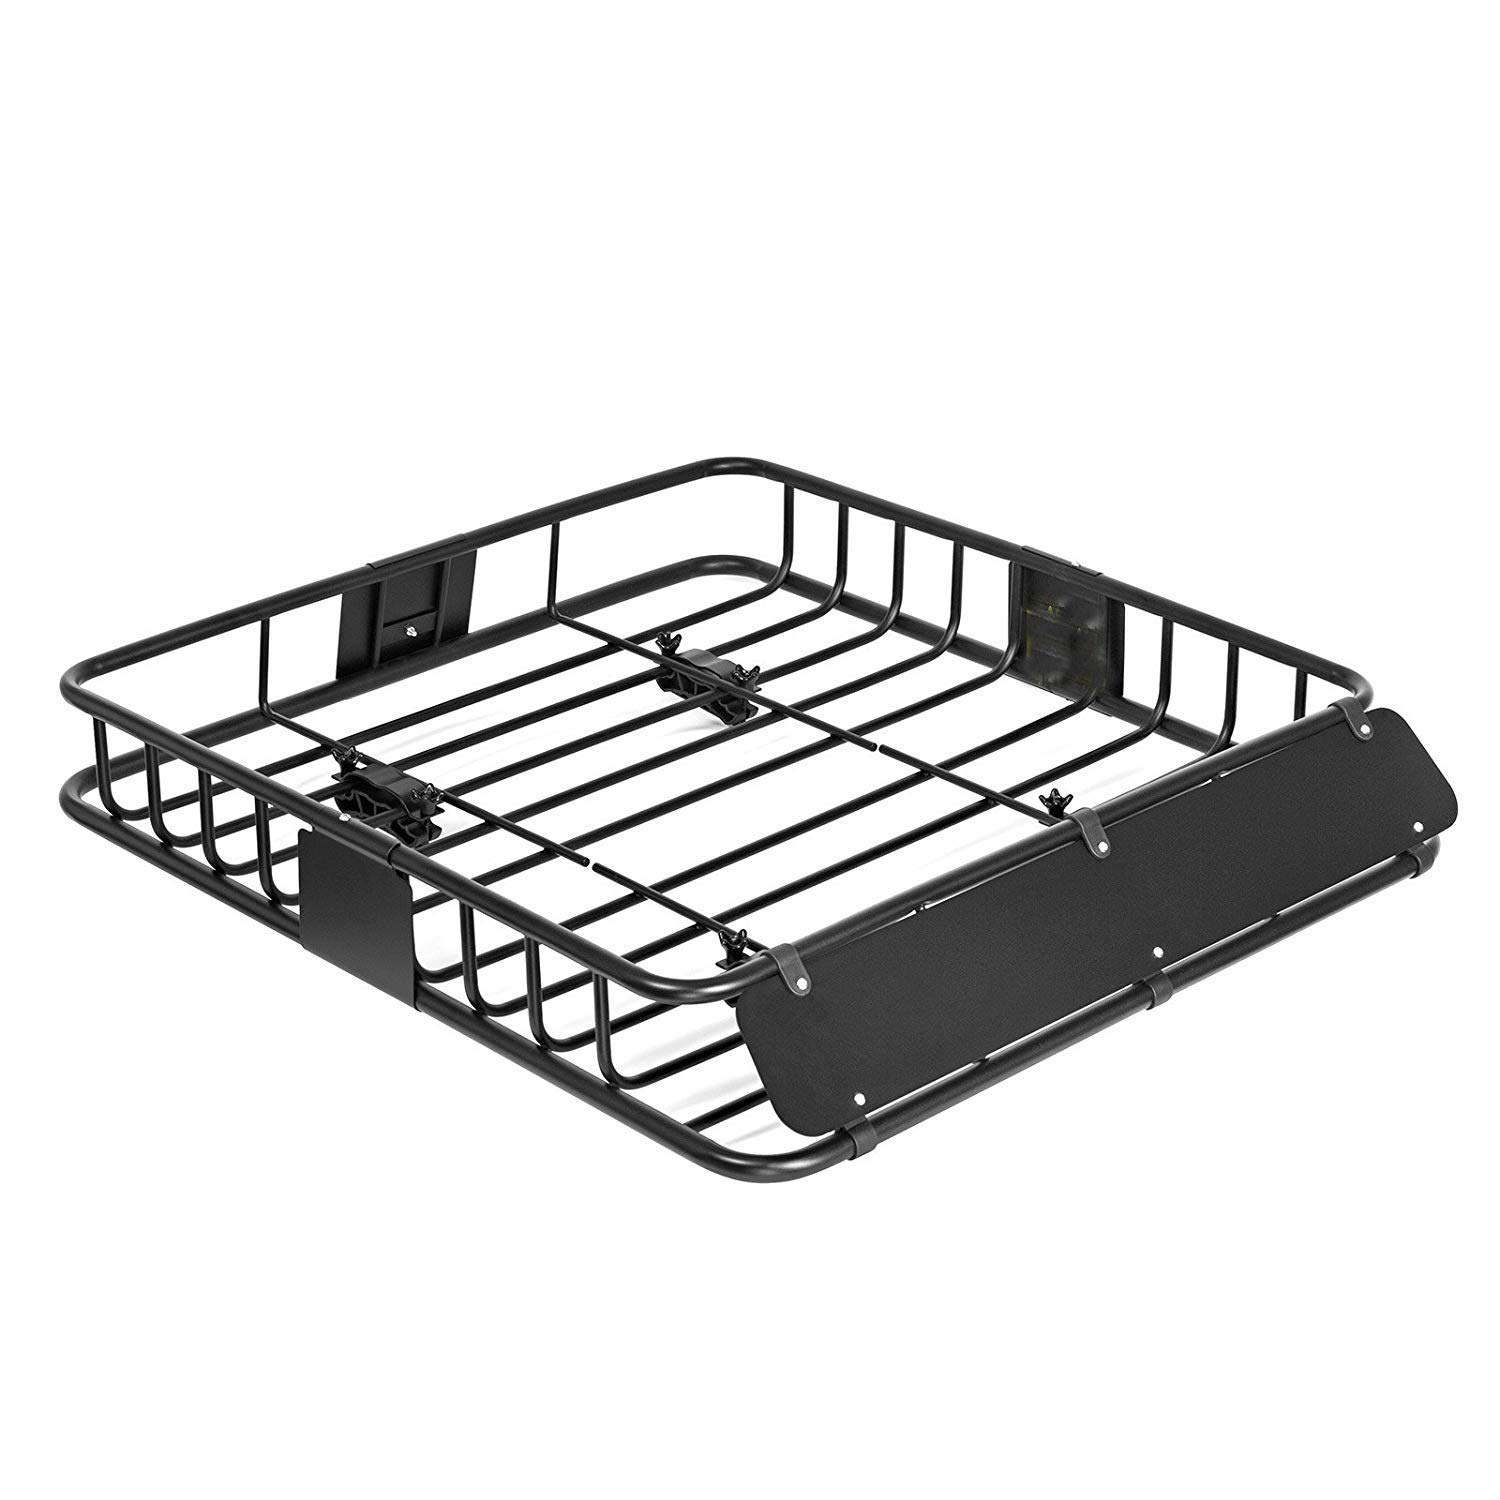 Universal Black Roof Rack Cargo Carrier roof rack Basket for Sedan SUV (43') ROKIOTOEX